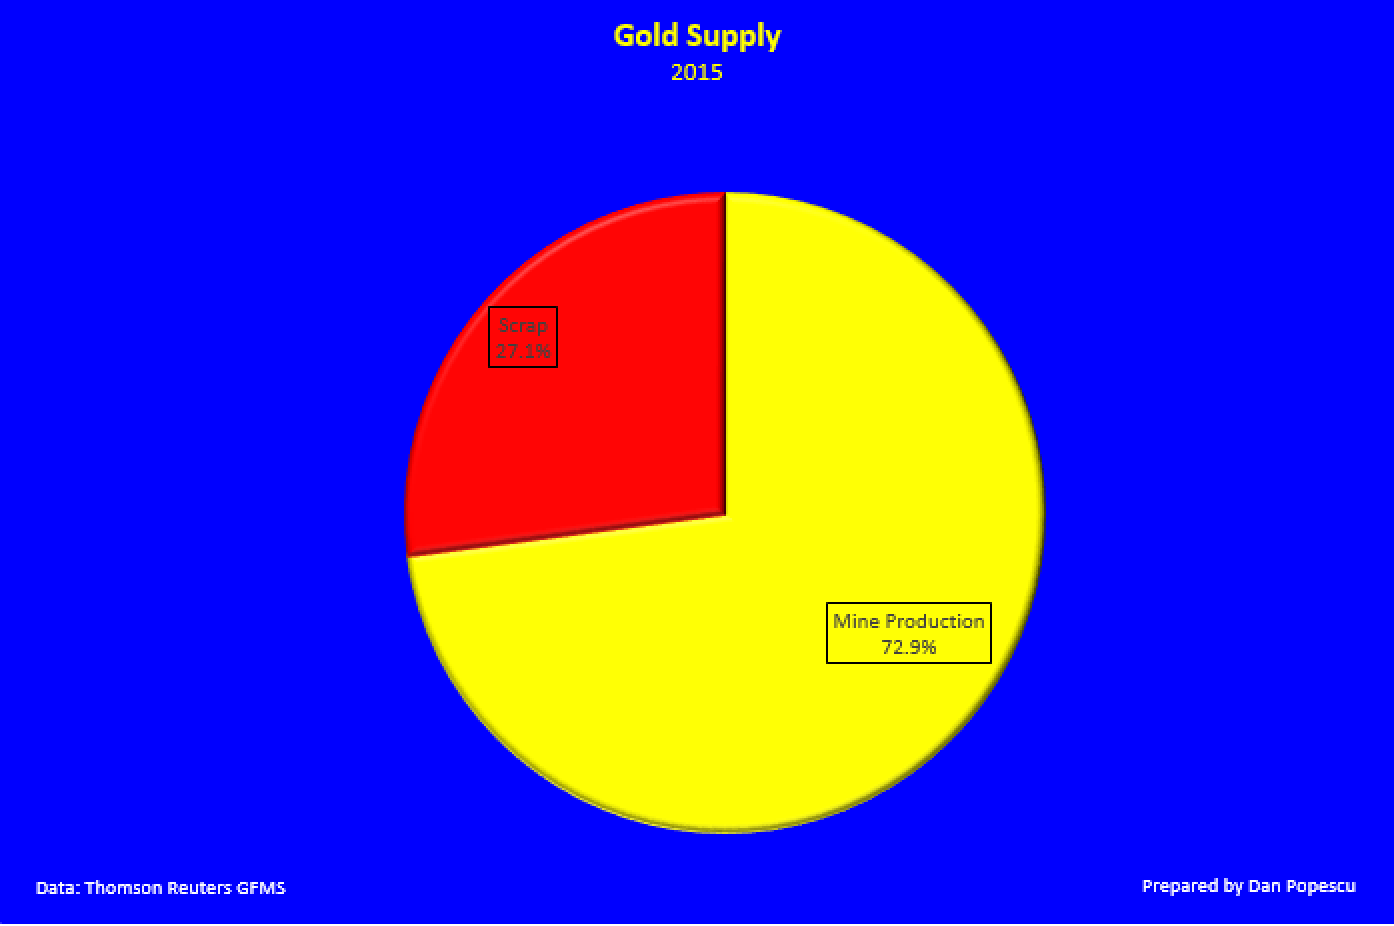 Gold supply 2015